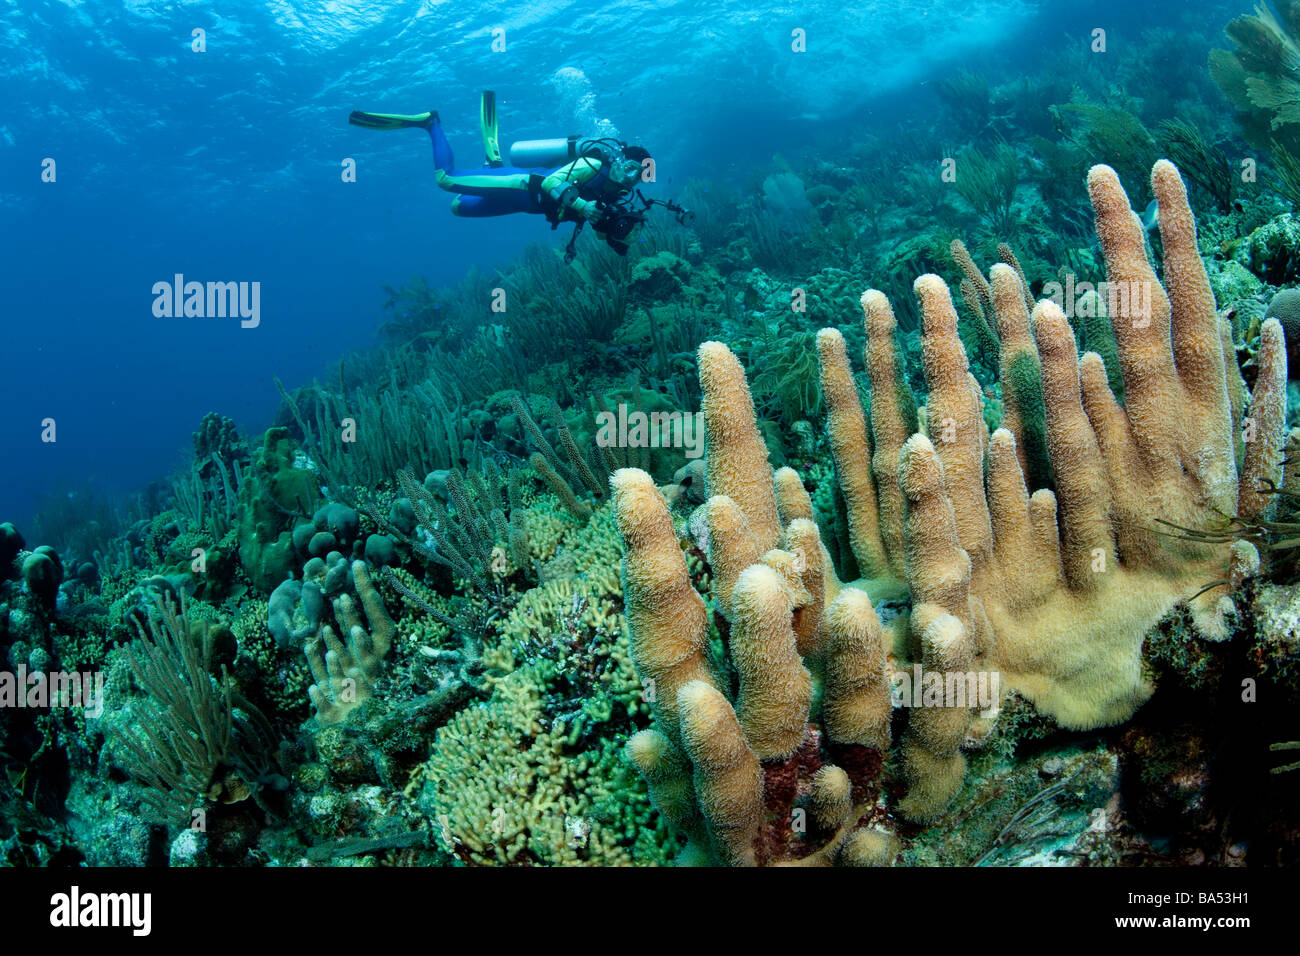 Healthy coral reef in Bonaire, featuring a stand of Pillar coral (Dendrogyra cylindrus) in the foreground. - Stock Image